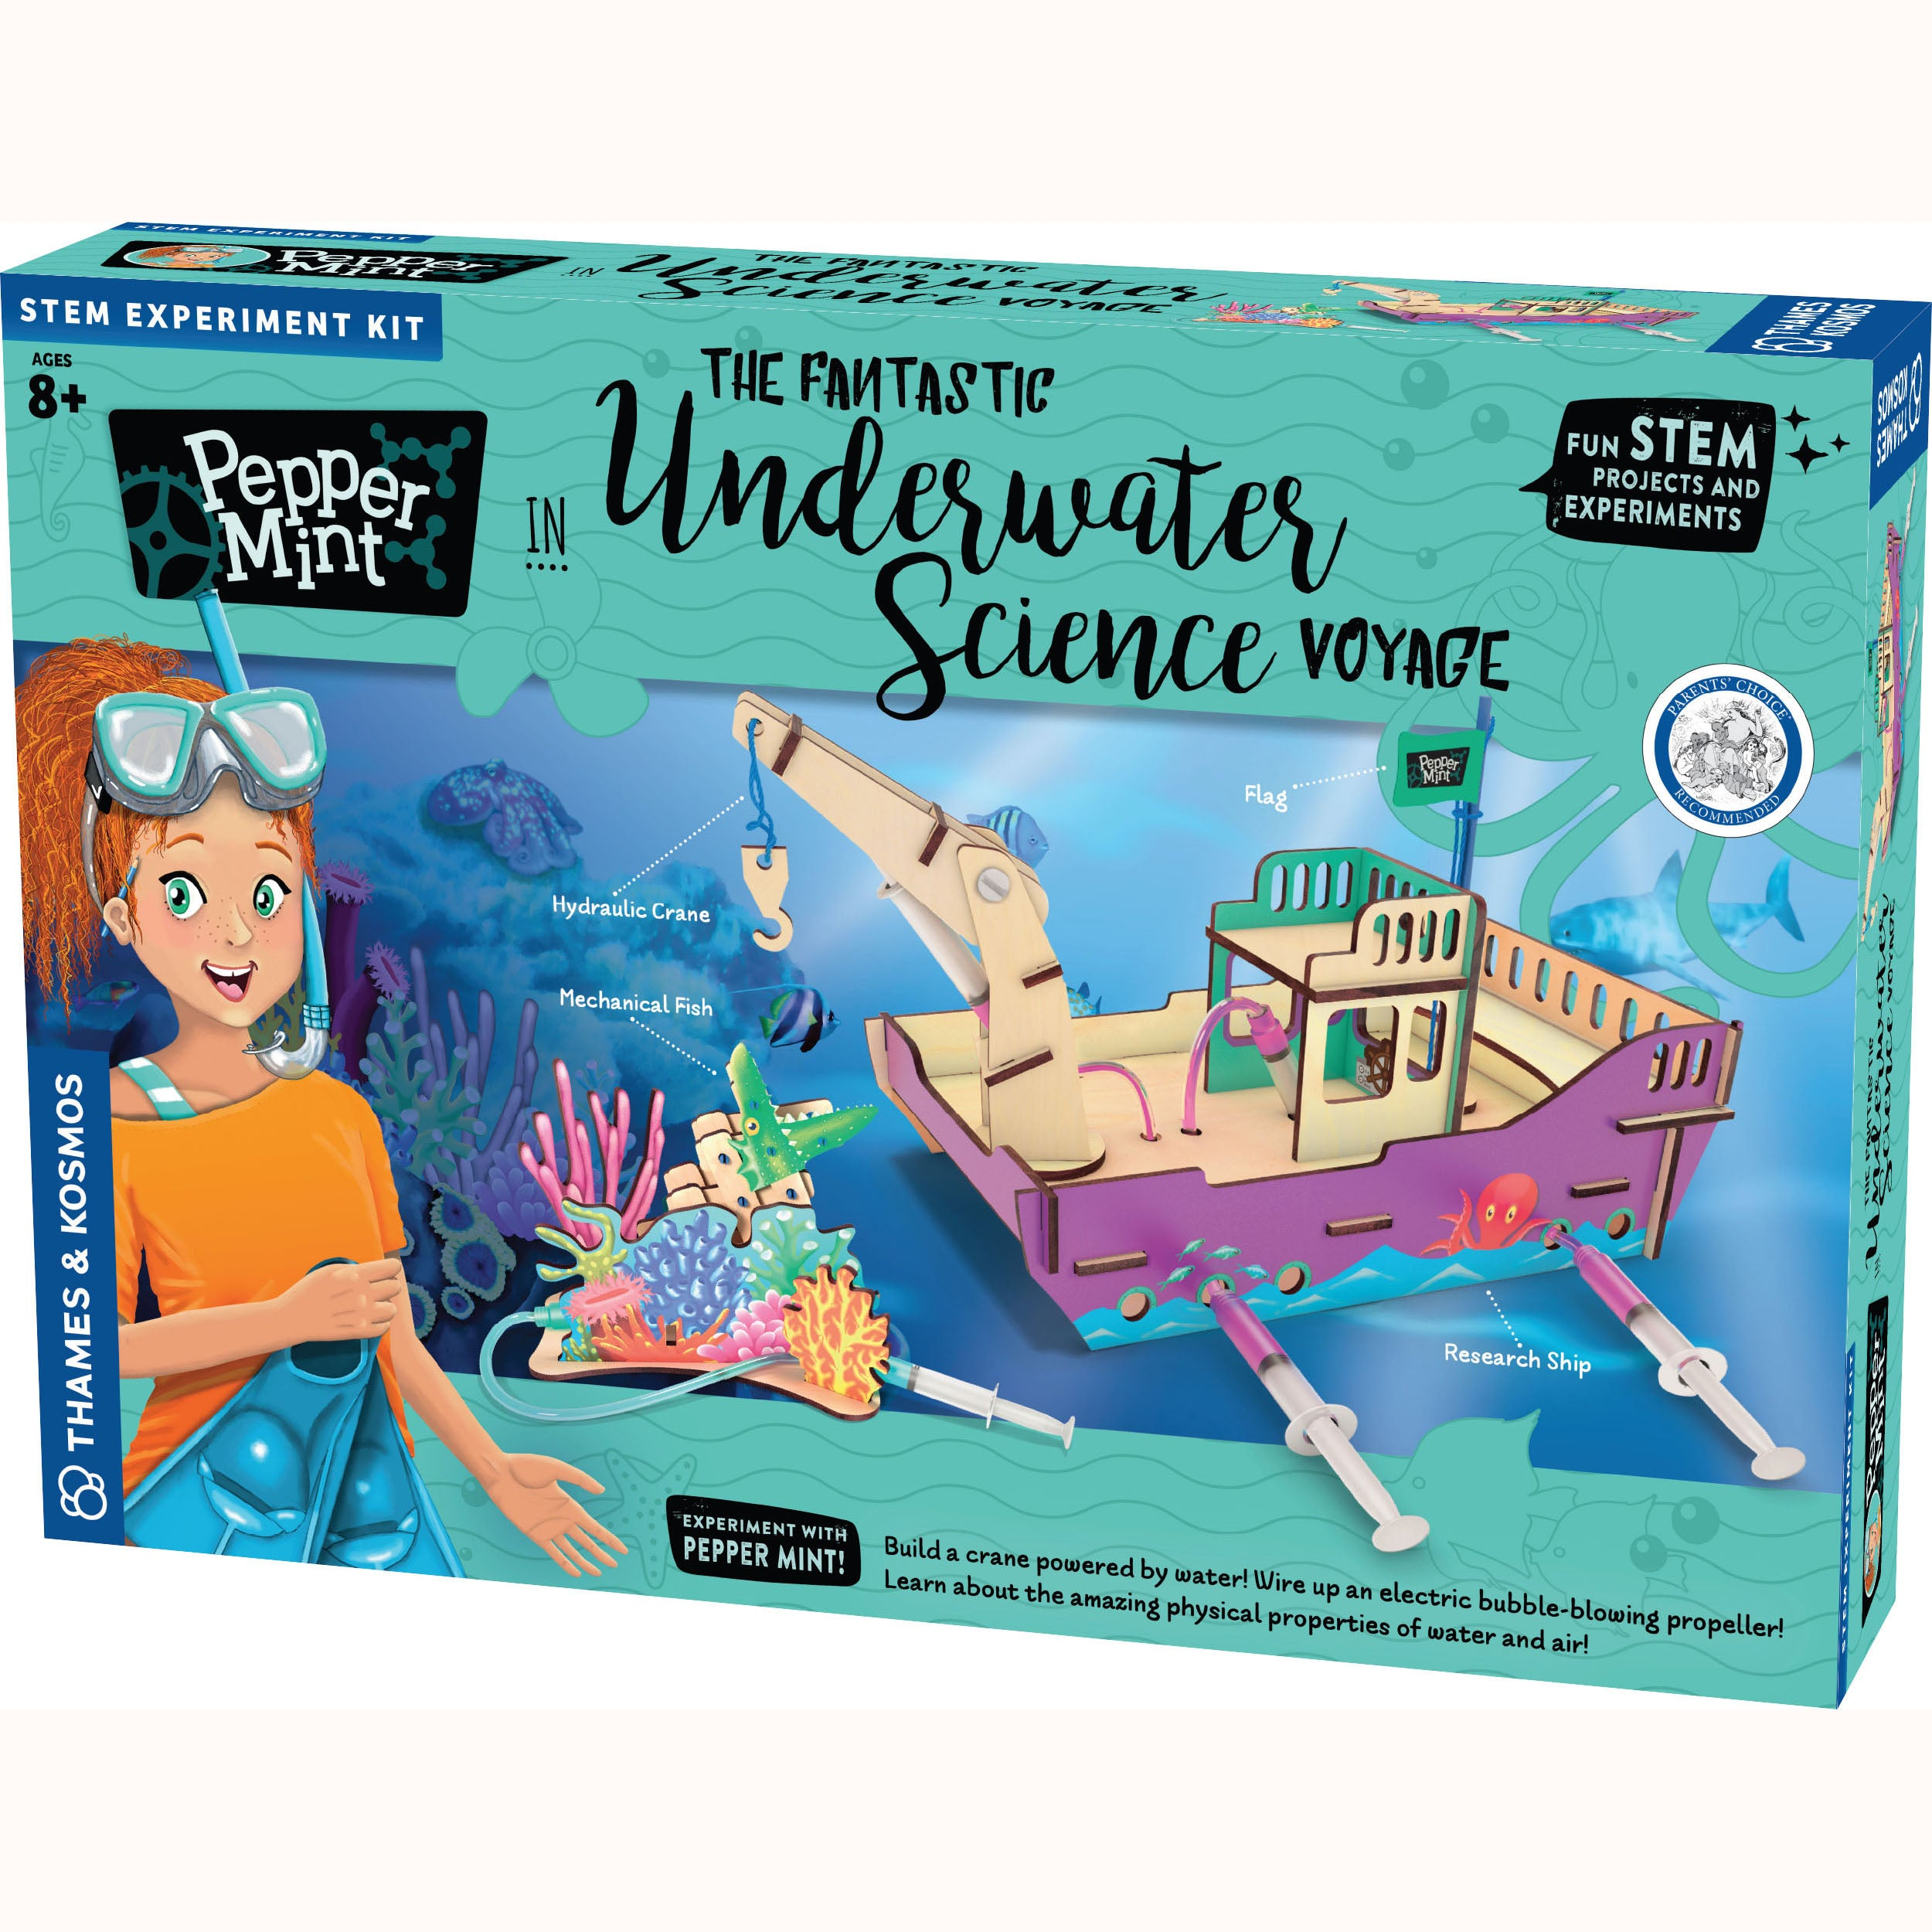 Pepper Mint Underwater science voyage, front of box